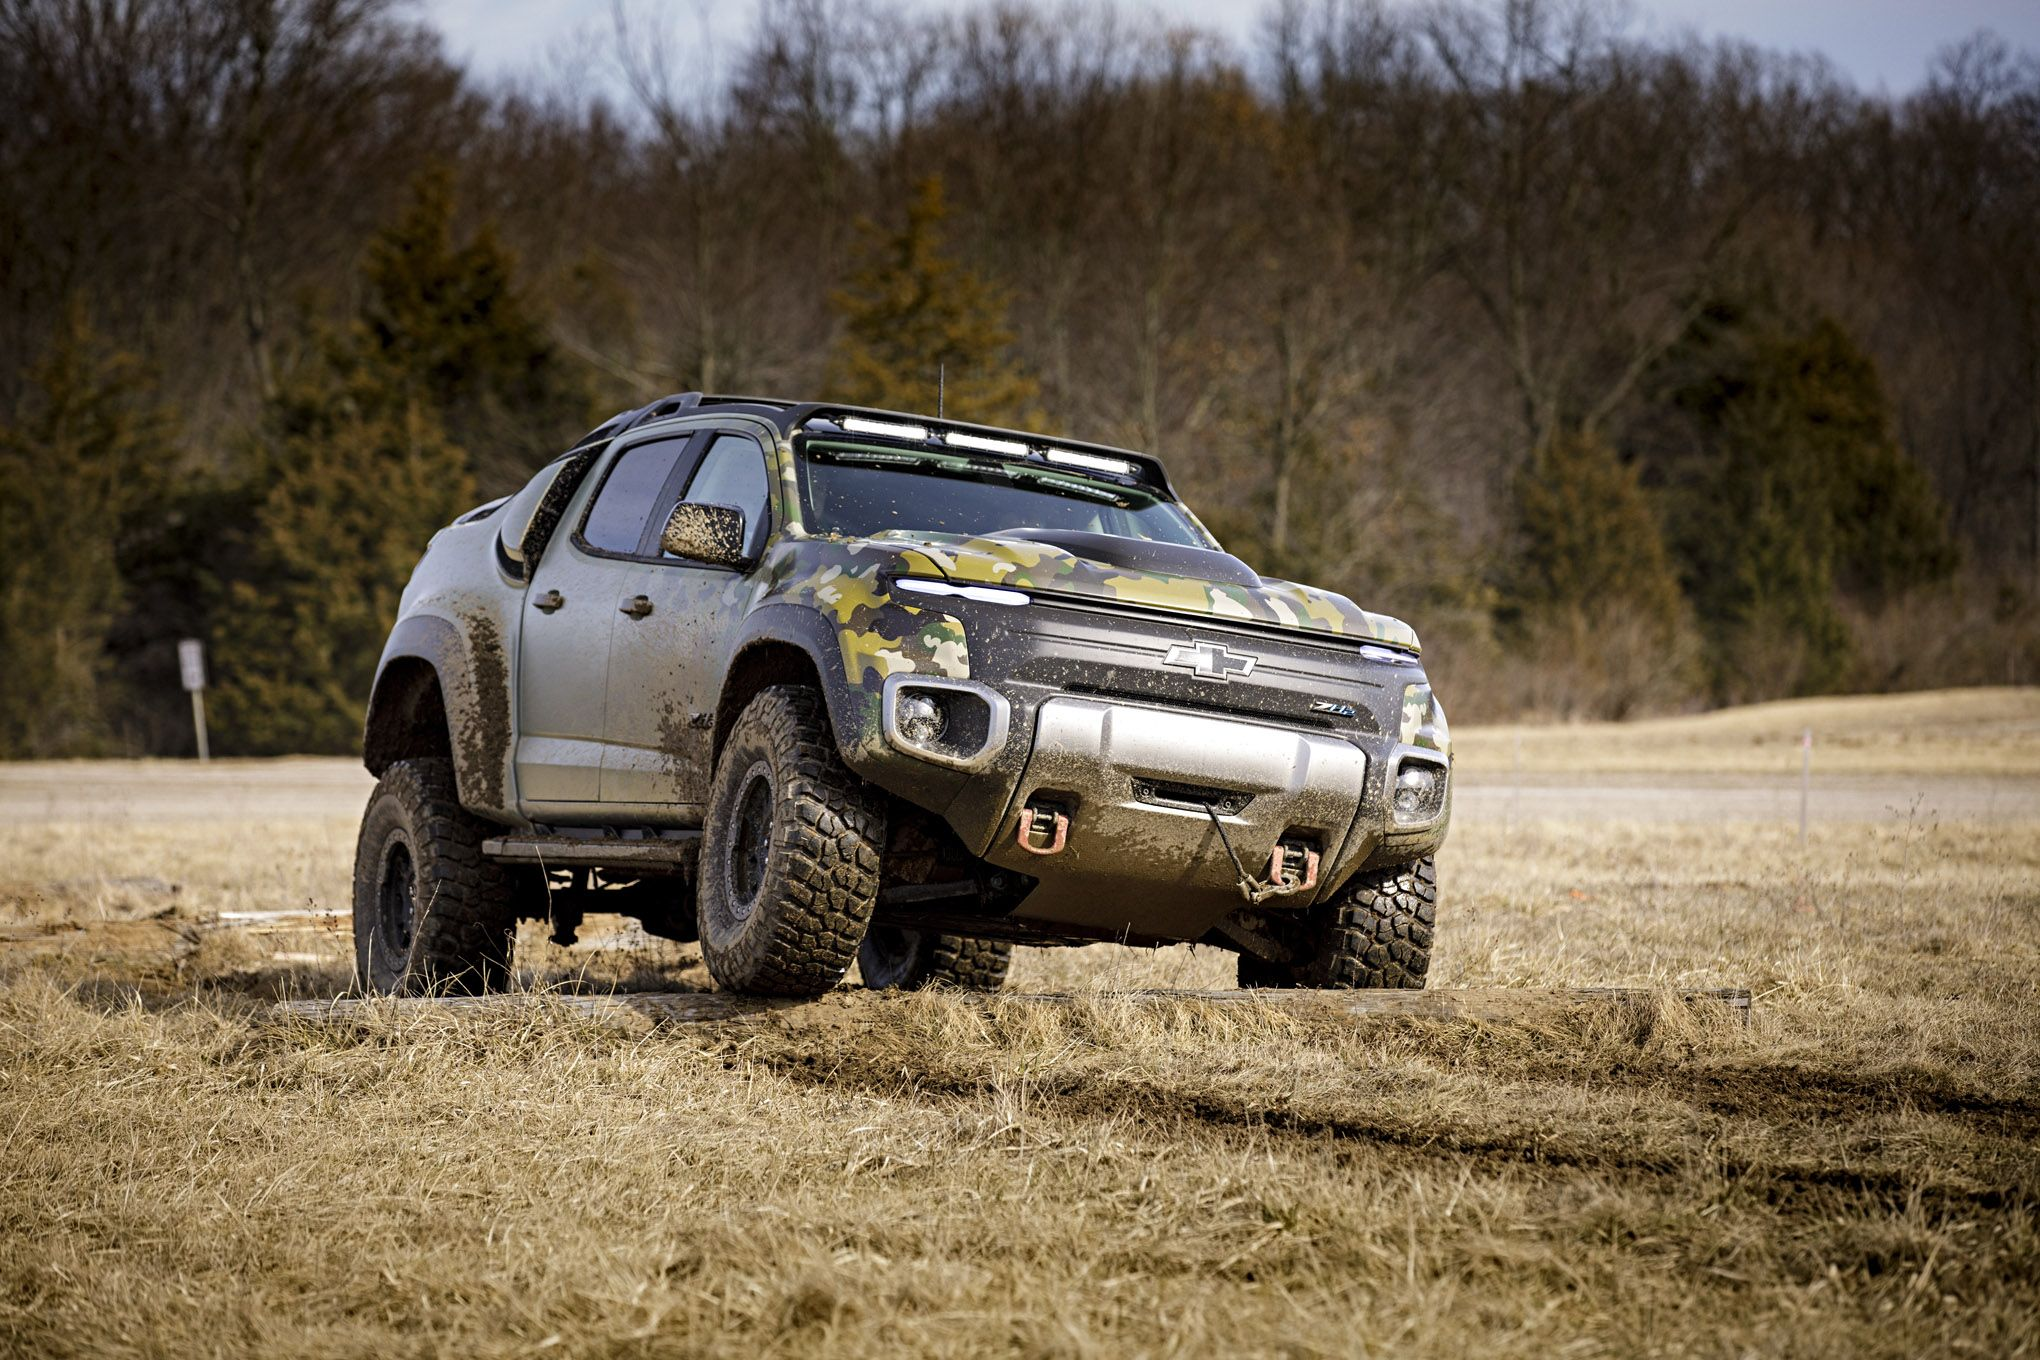 019 Tardec Chevrolet Colorado Zh2 Hydrogen Fuel Cell